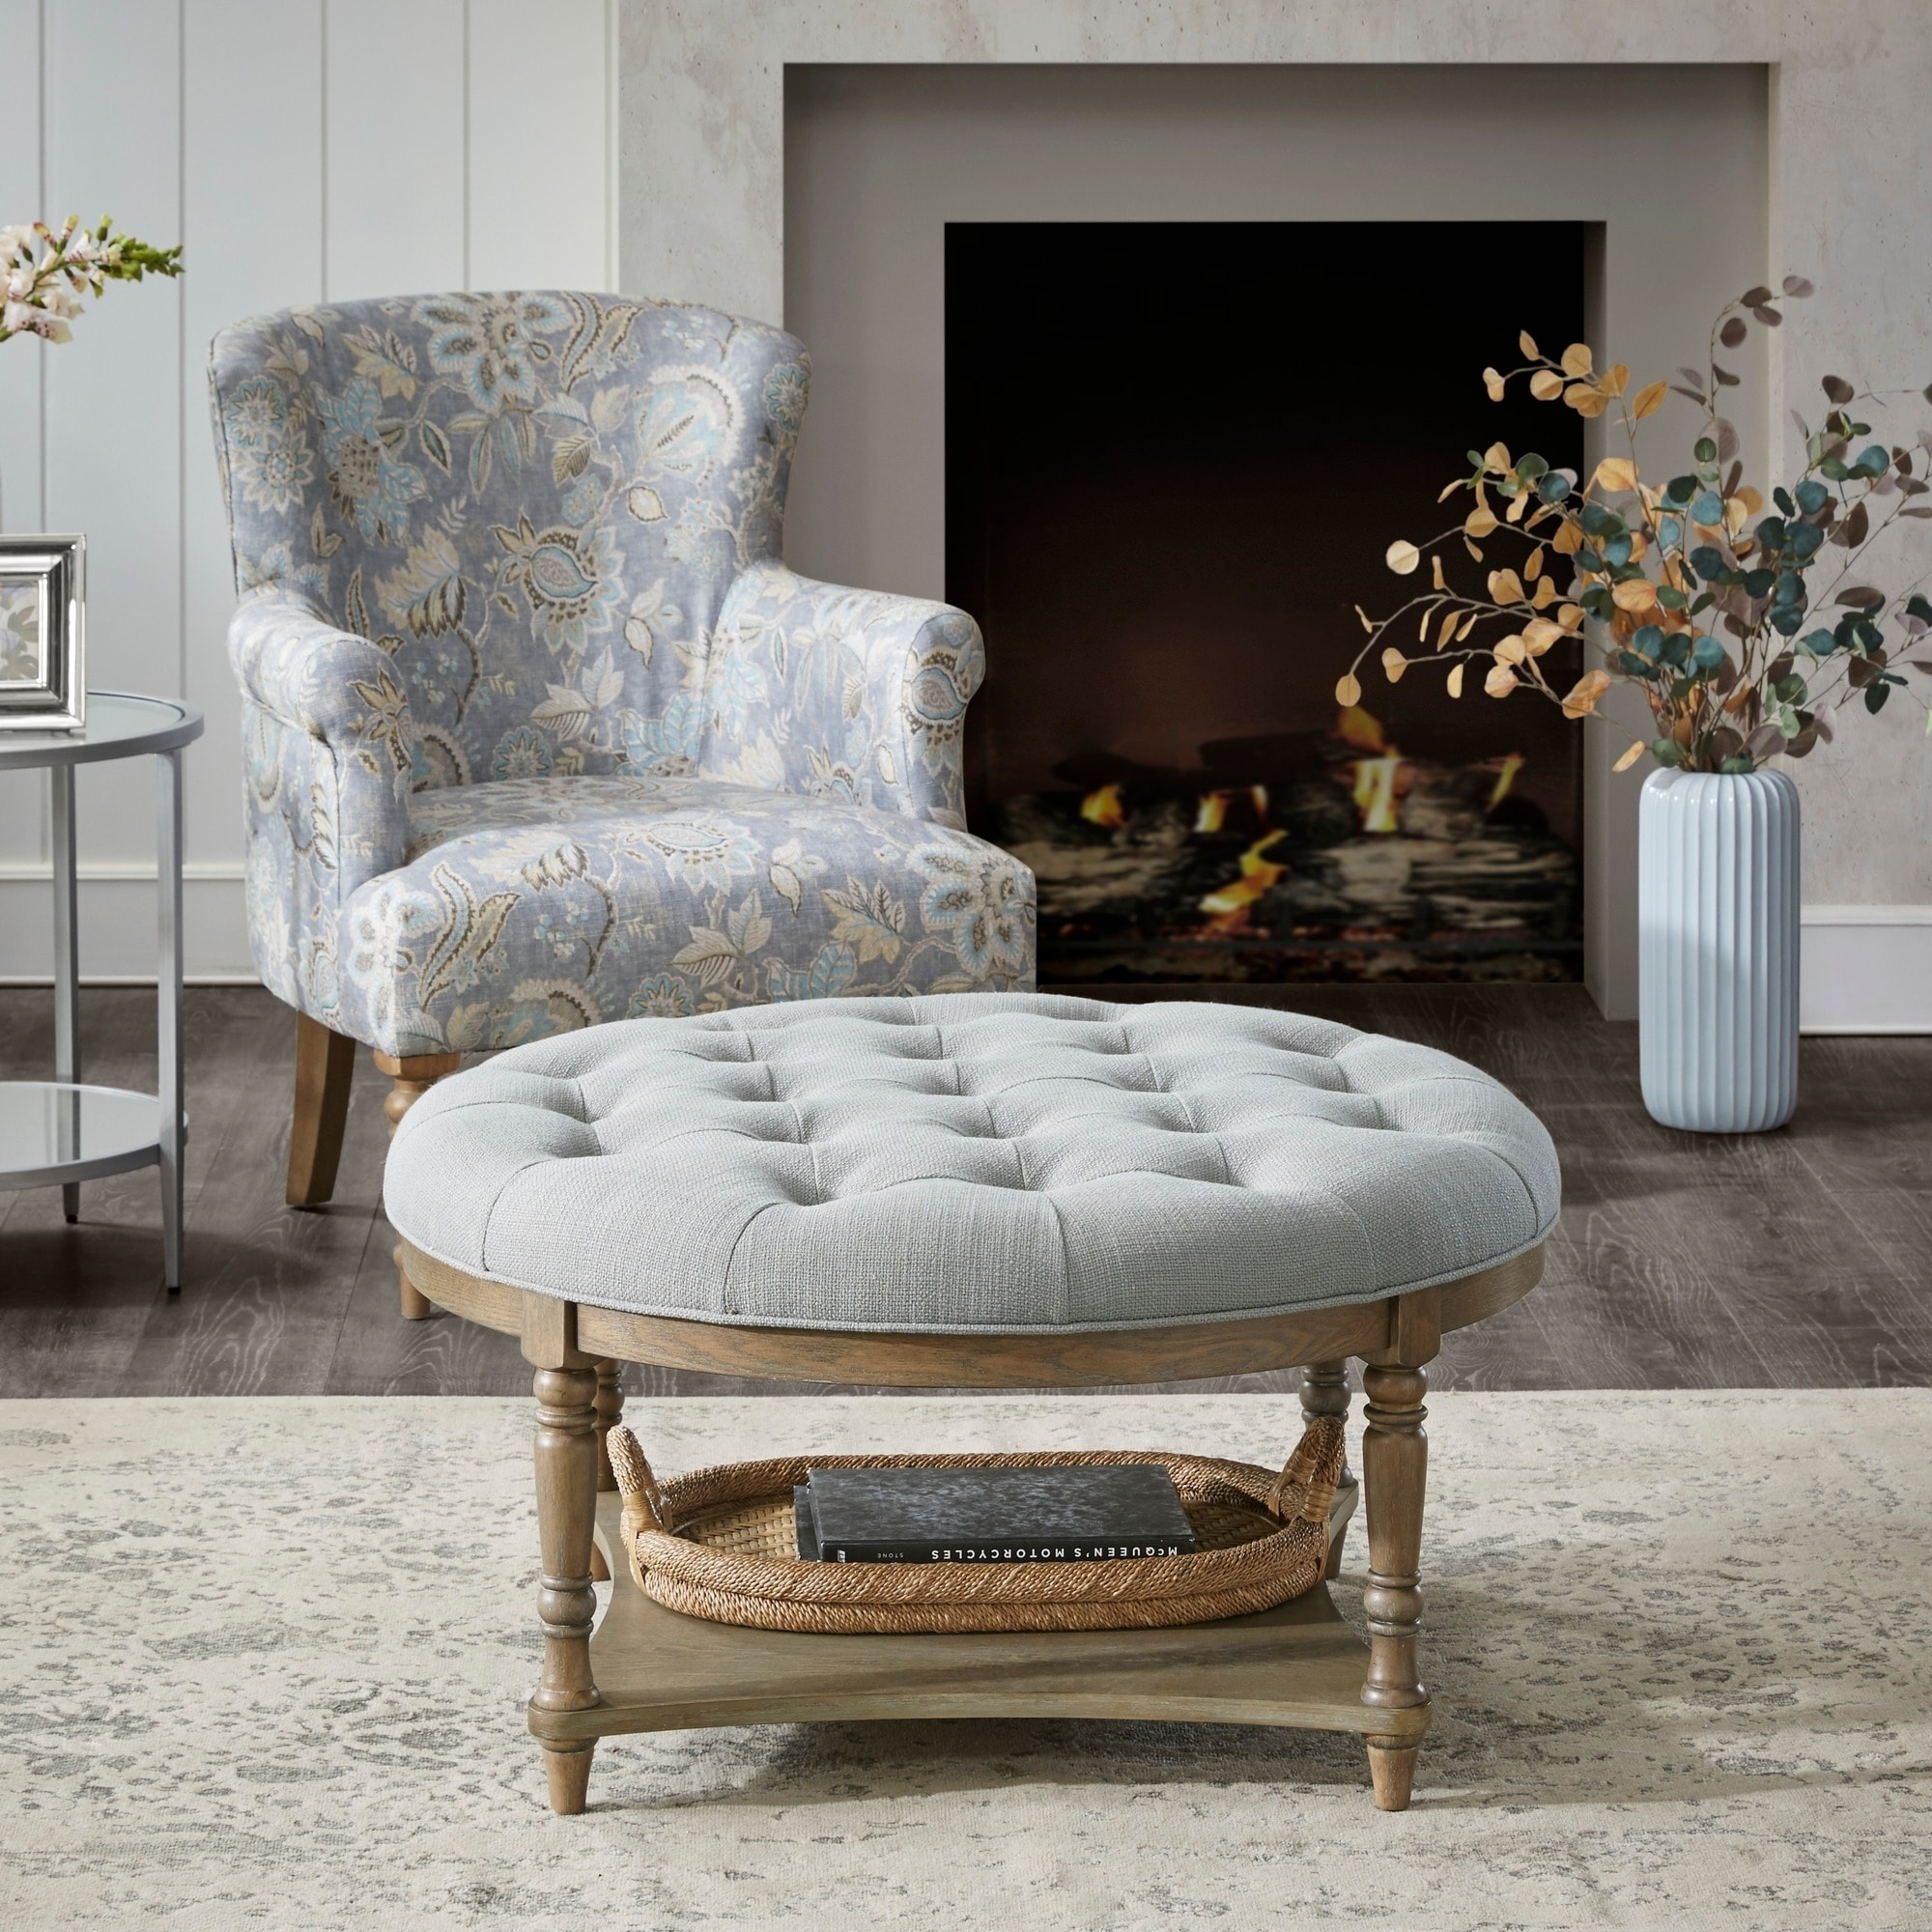 Swell Buy Martha Stewart Ottomans Storage Ottomans Online At Lamtechconsult Wood Chair Design Ideas Lamtechconsultcom